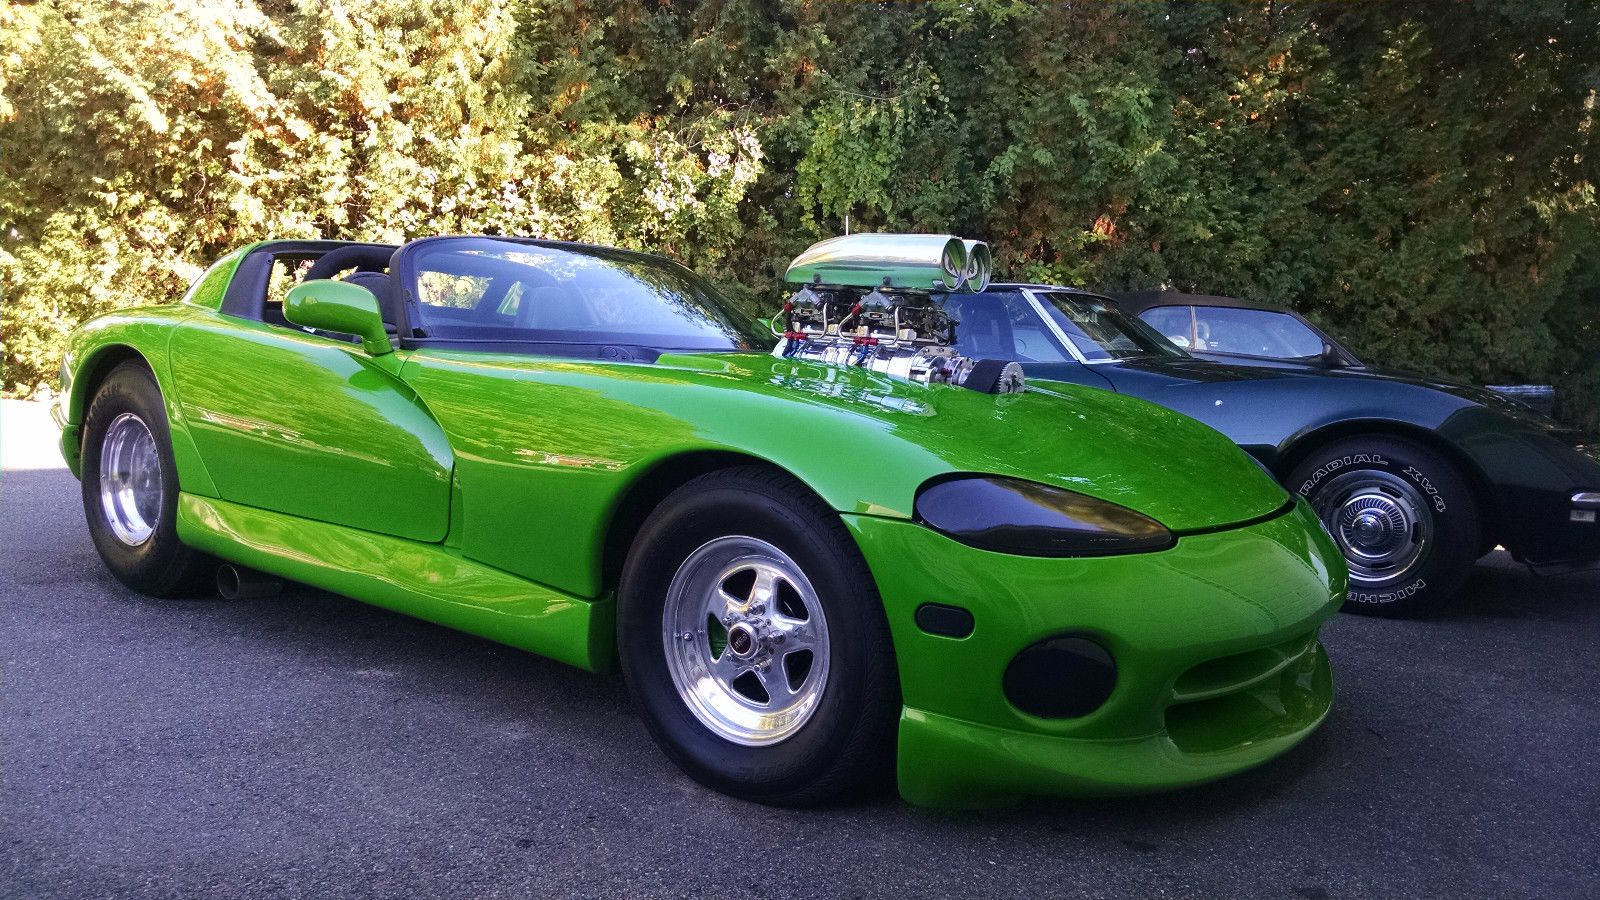 1998 viper with a blown chevy v8